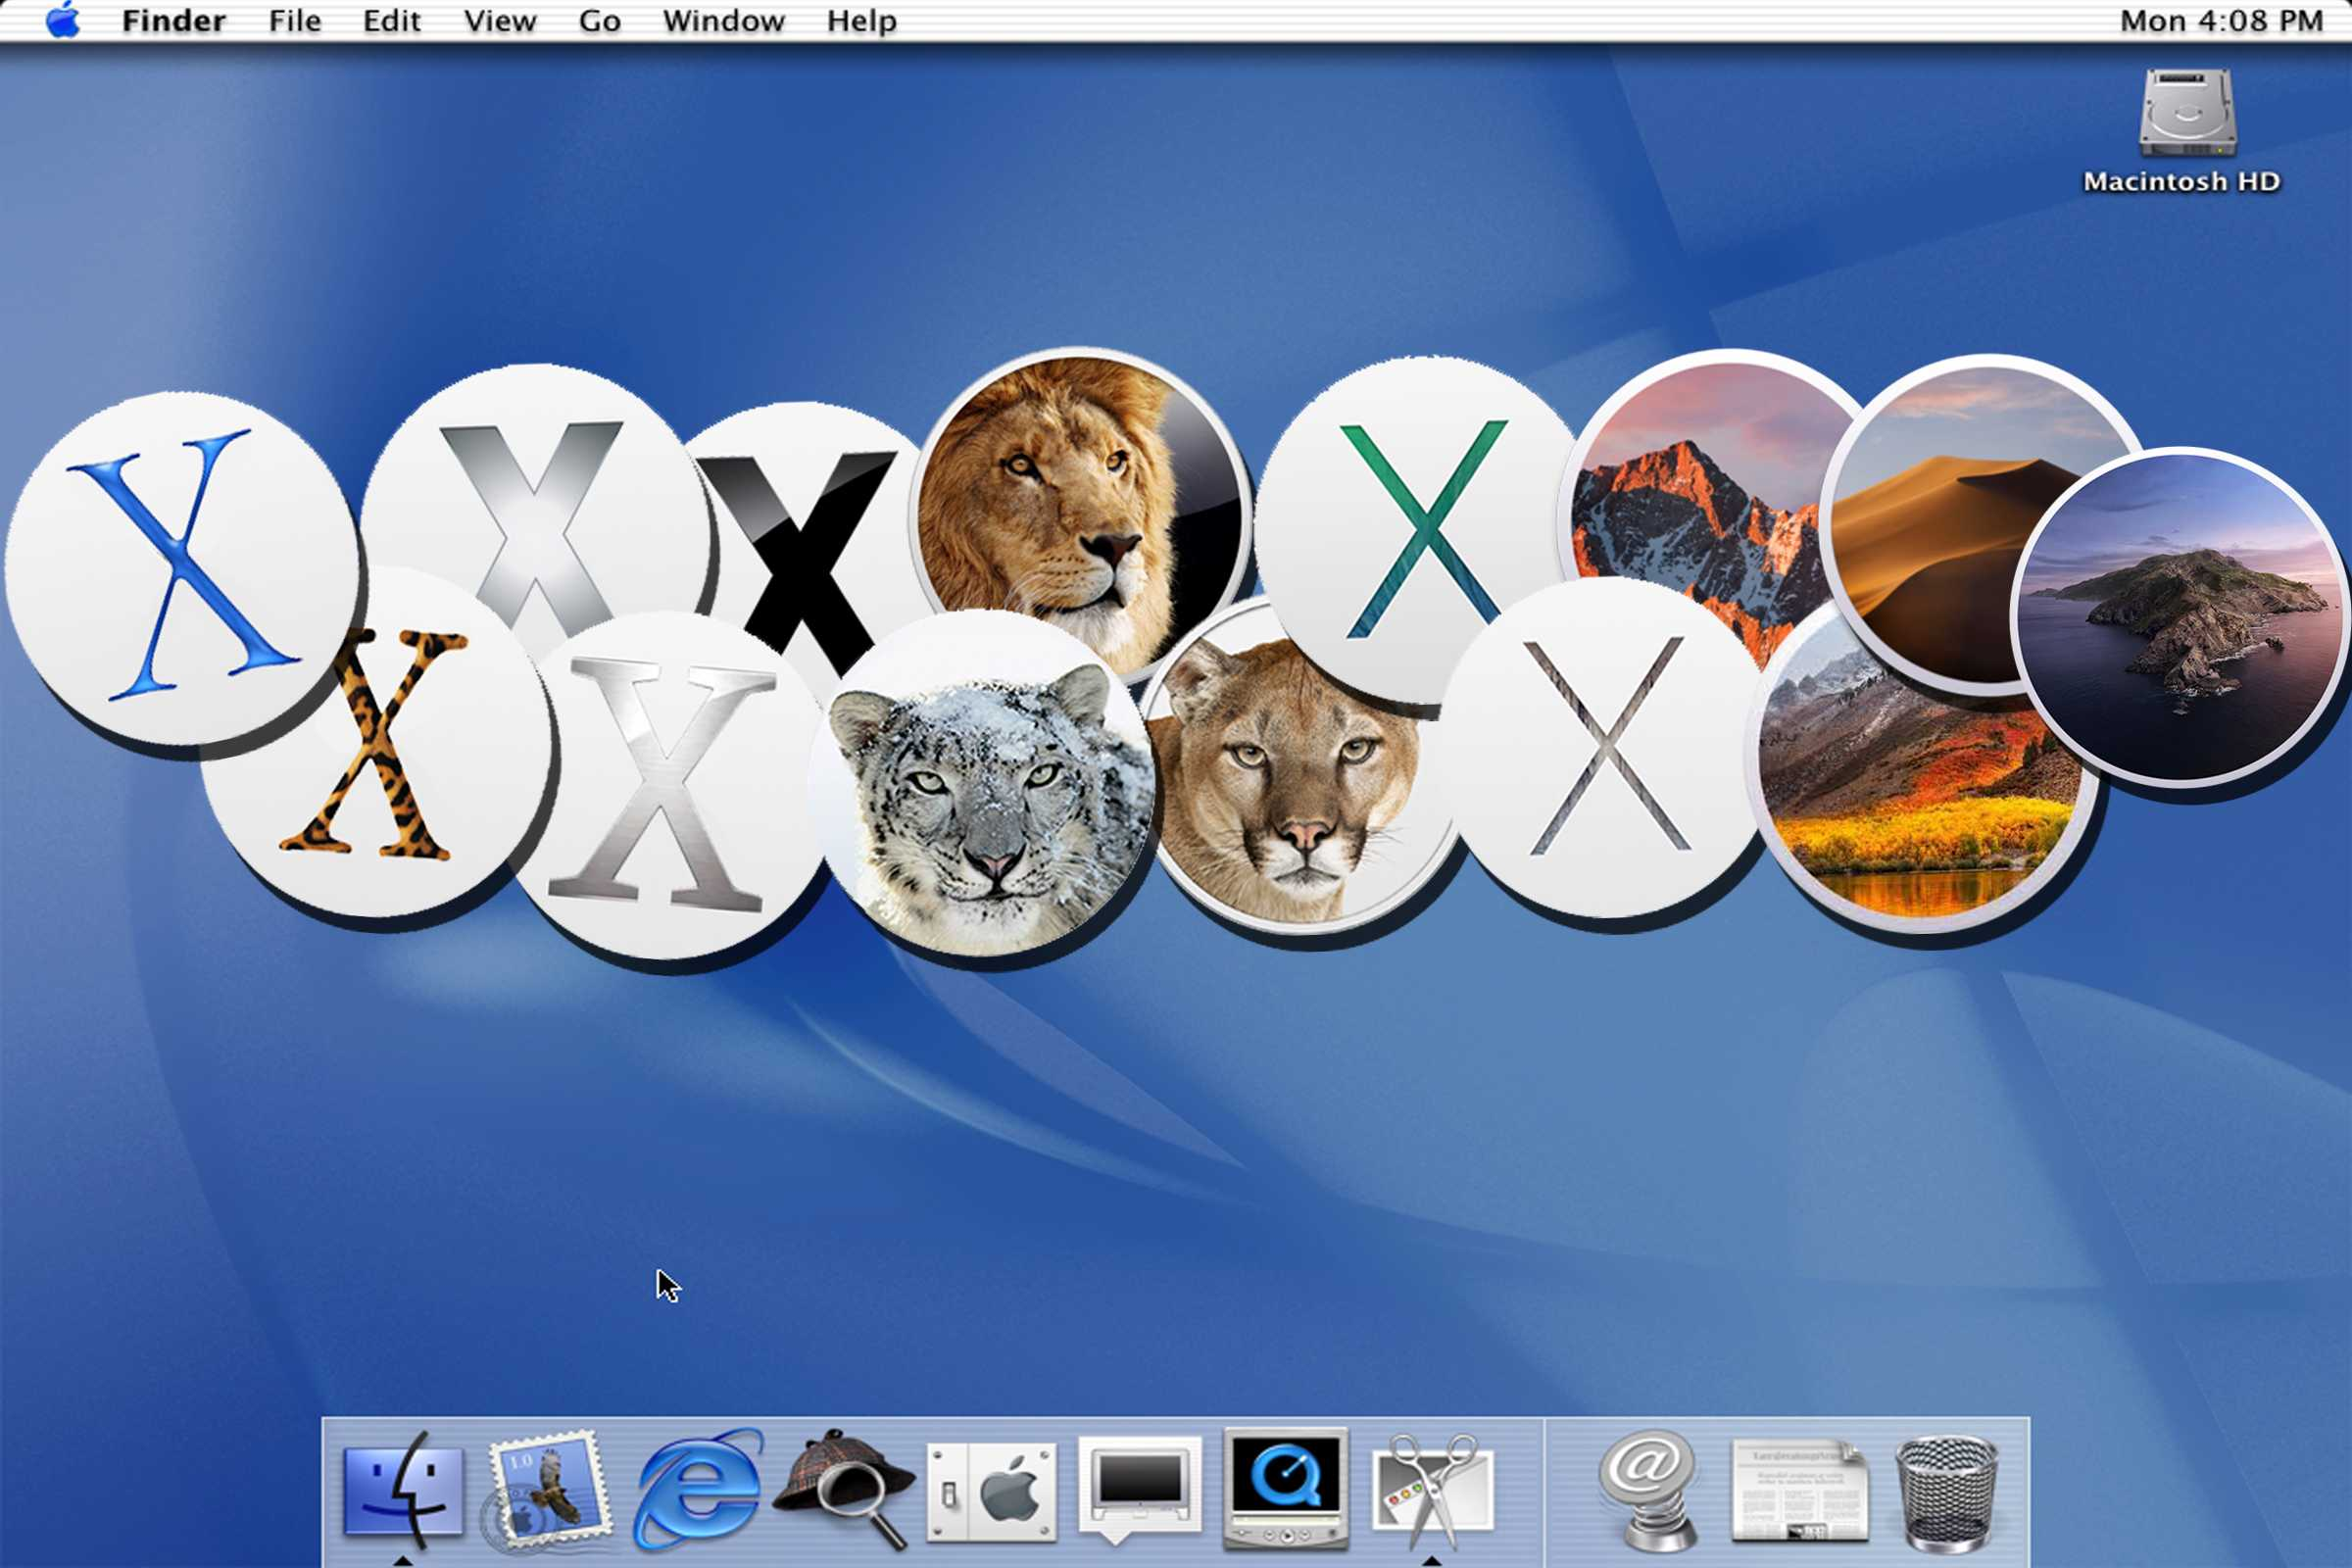 20 years ago Apple released Mac OS X.